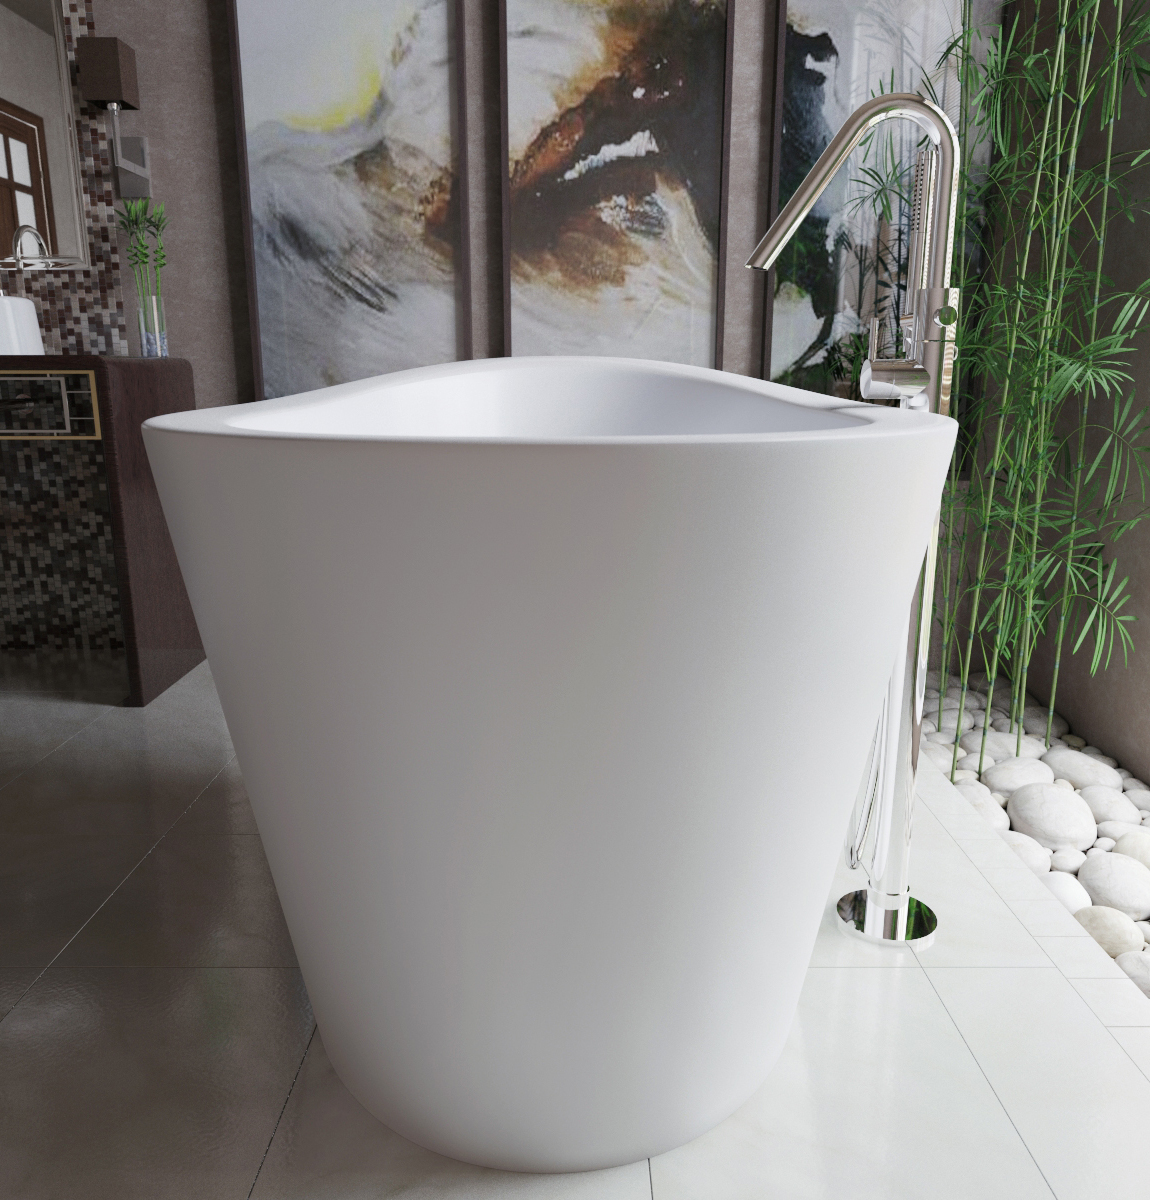 aquatica true ofuro freestanding stone japanese soaking